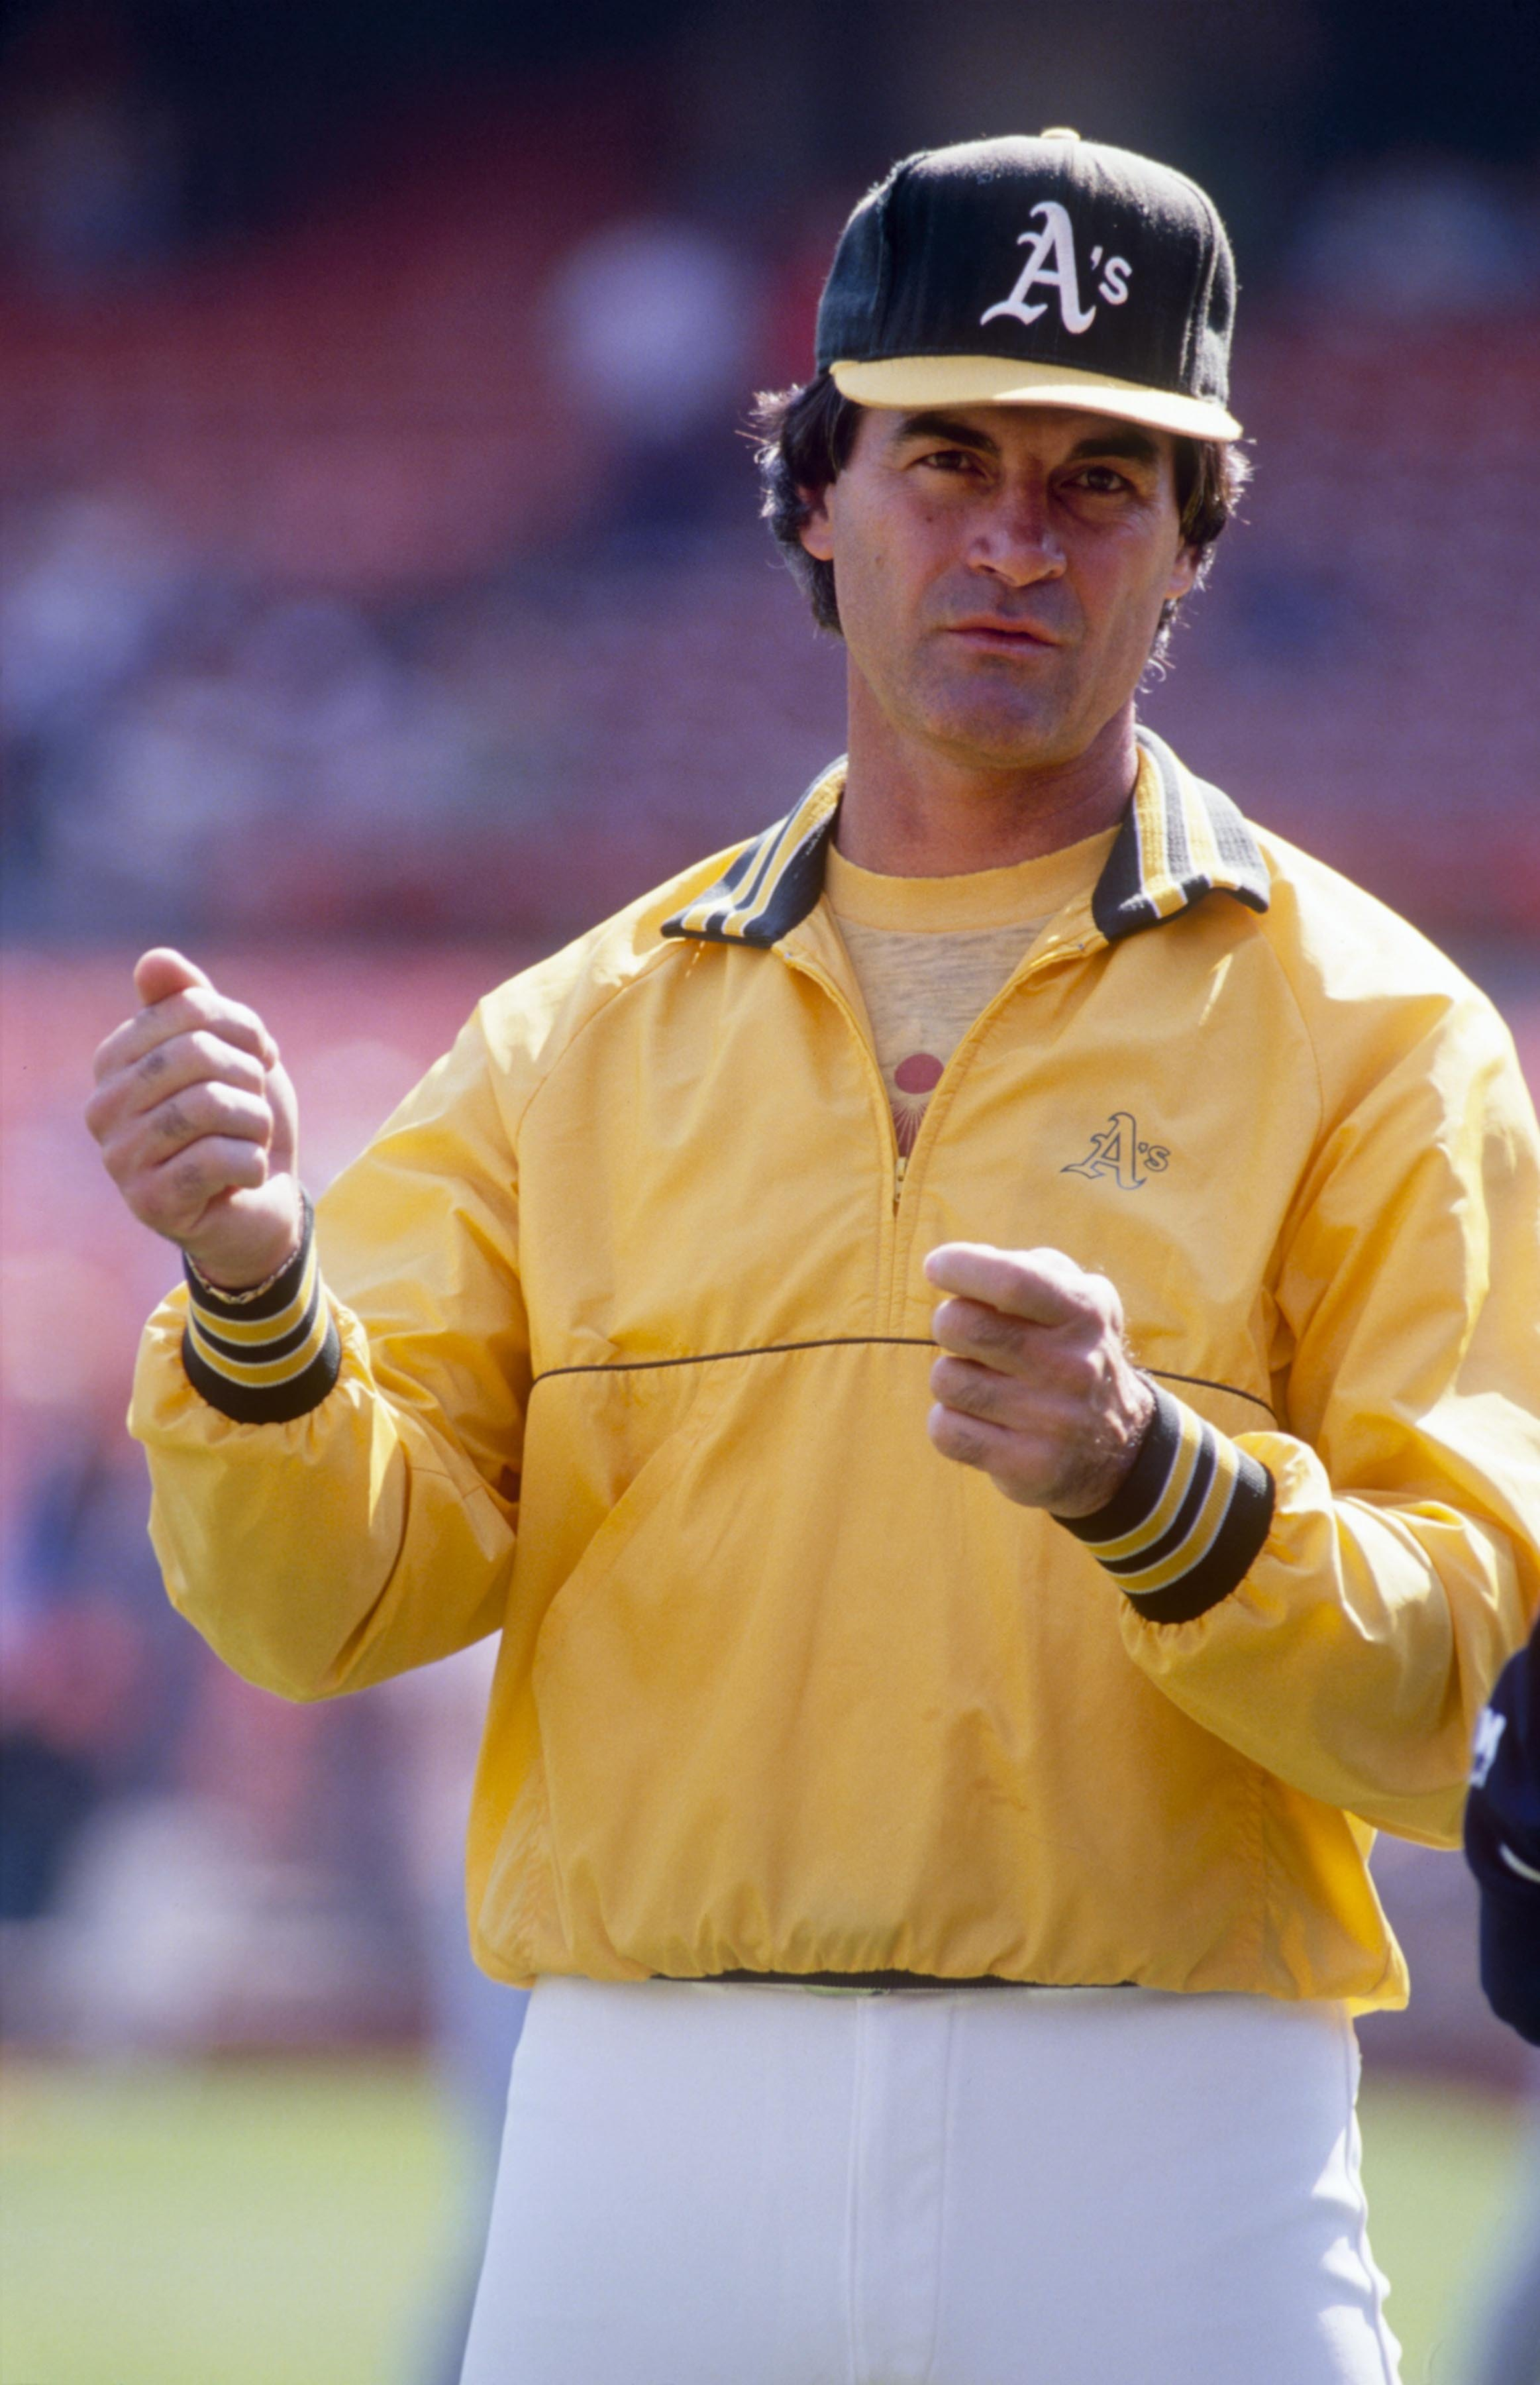 OAKLAND, CA - CIRCA 1988:  Manager Tony LaRussa of the Oakland Athletics looks on during batting practice prior to an MLB game circa 1988 at the Oakland-Alameda County Coliseum in Oakland, California. (Photo by Otto Greule Jr./Getty Images)